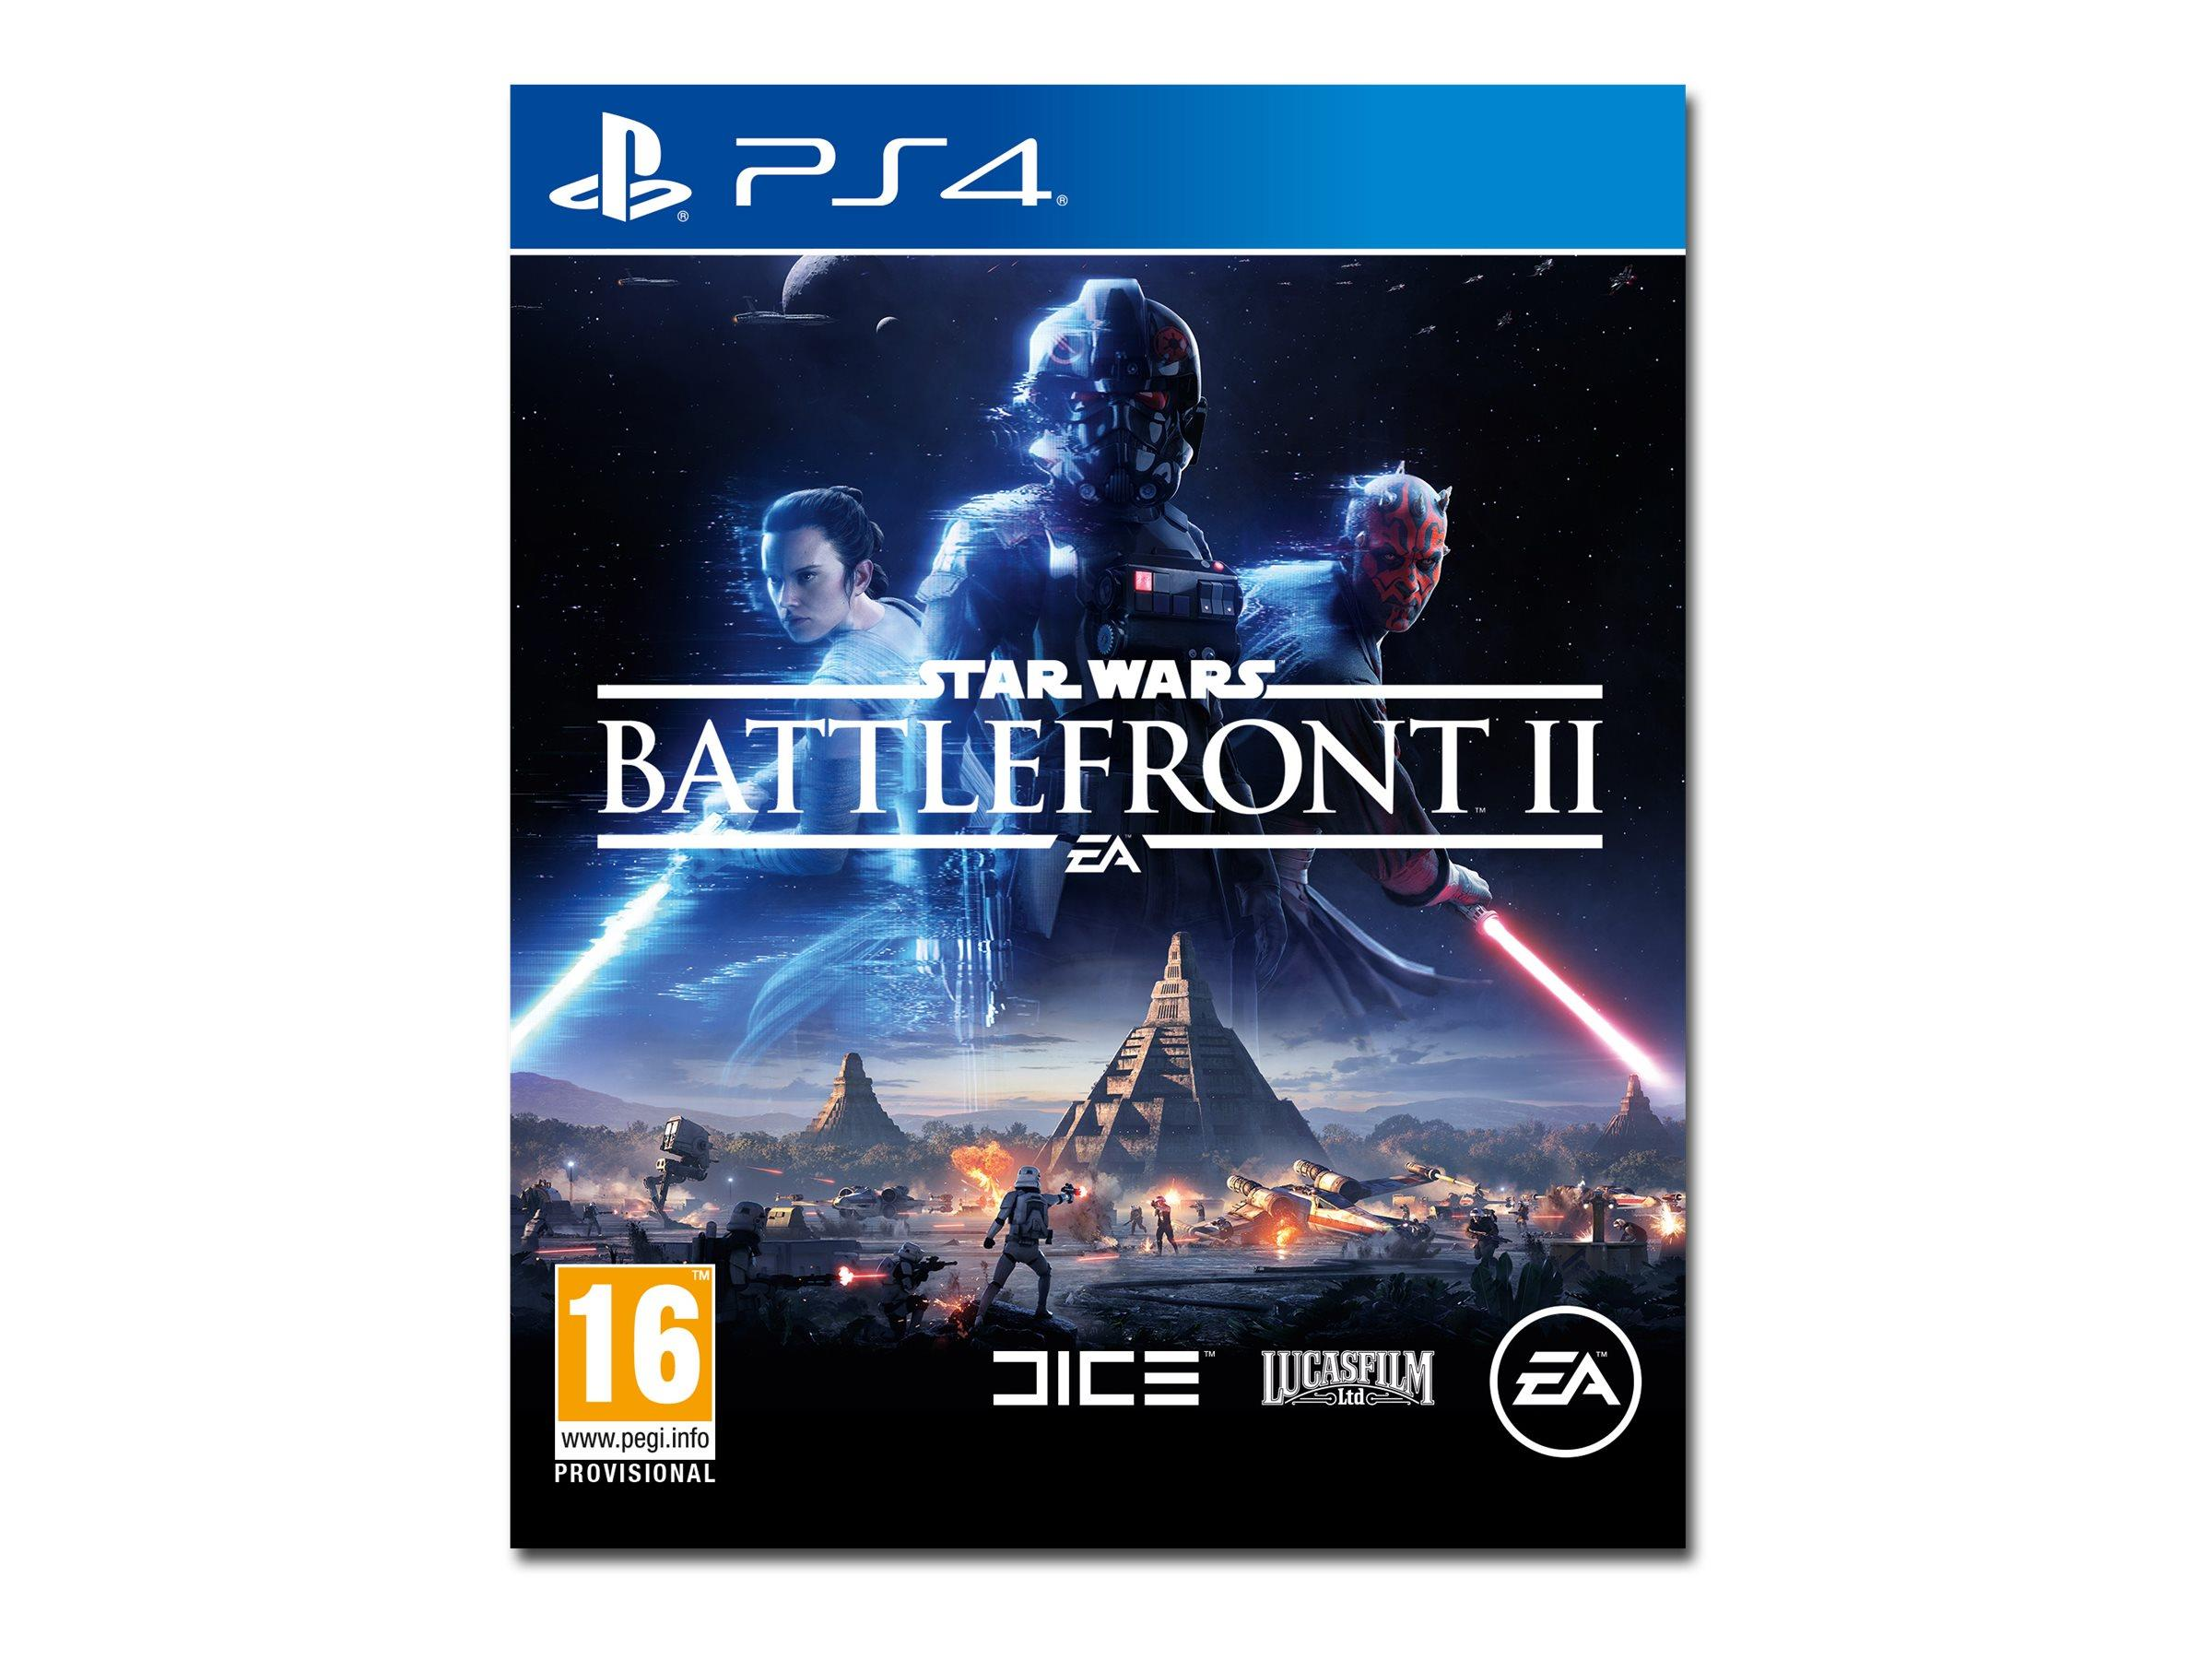 SONY GAME PS4 STARWARS BATTLE FRONT 2